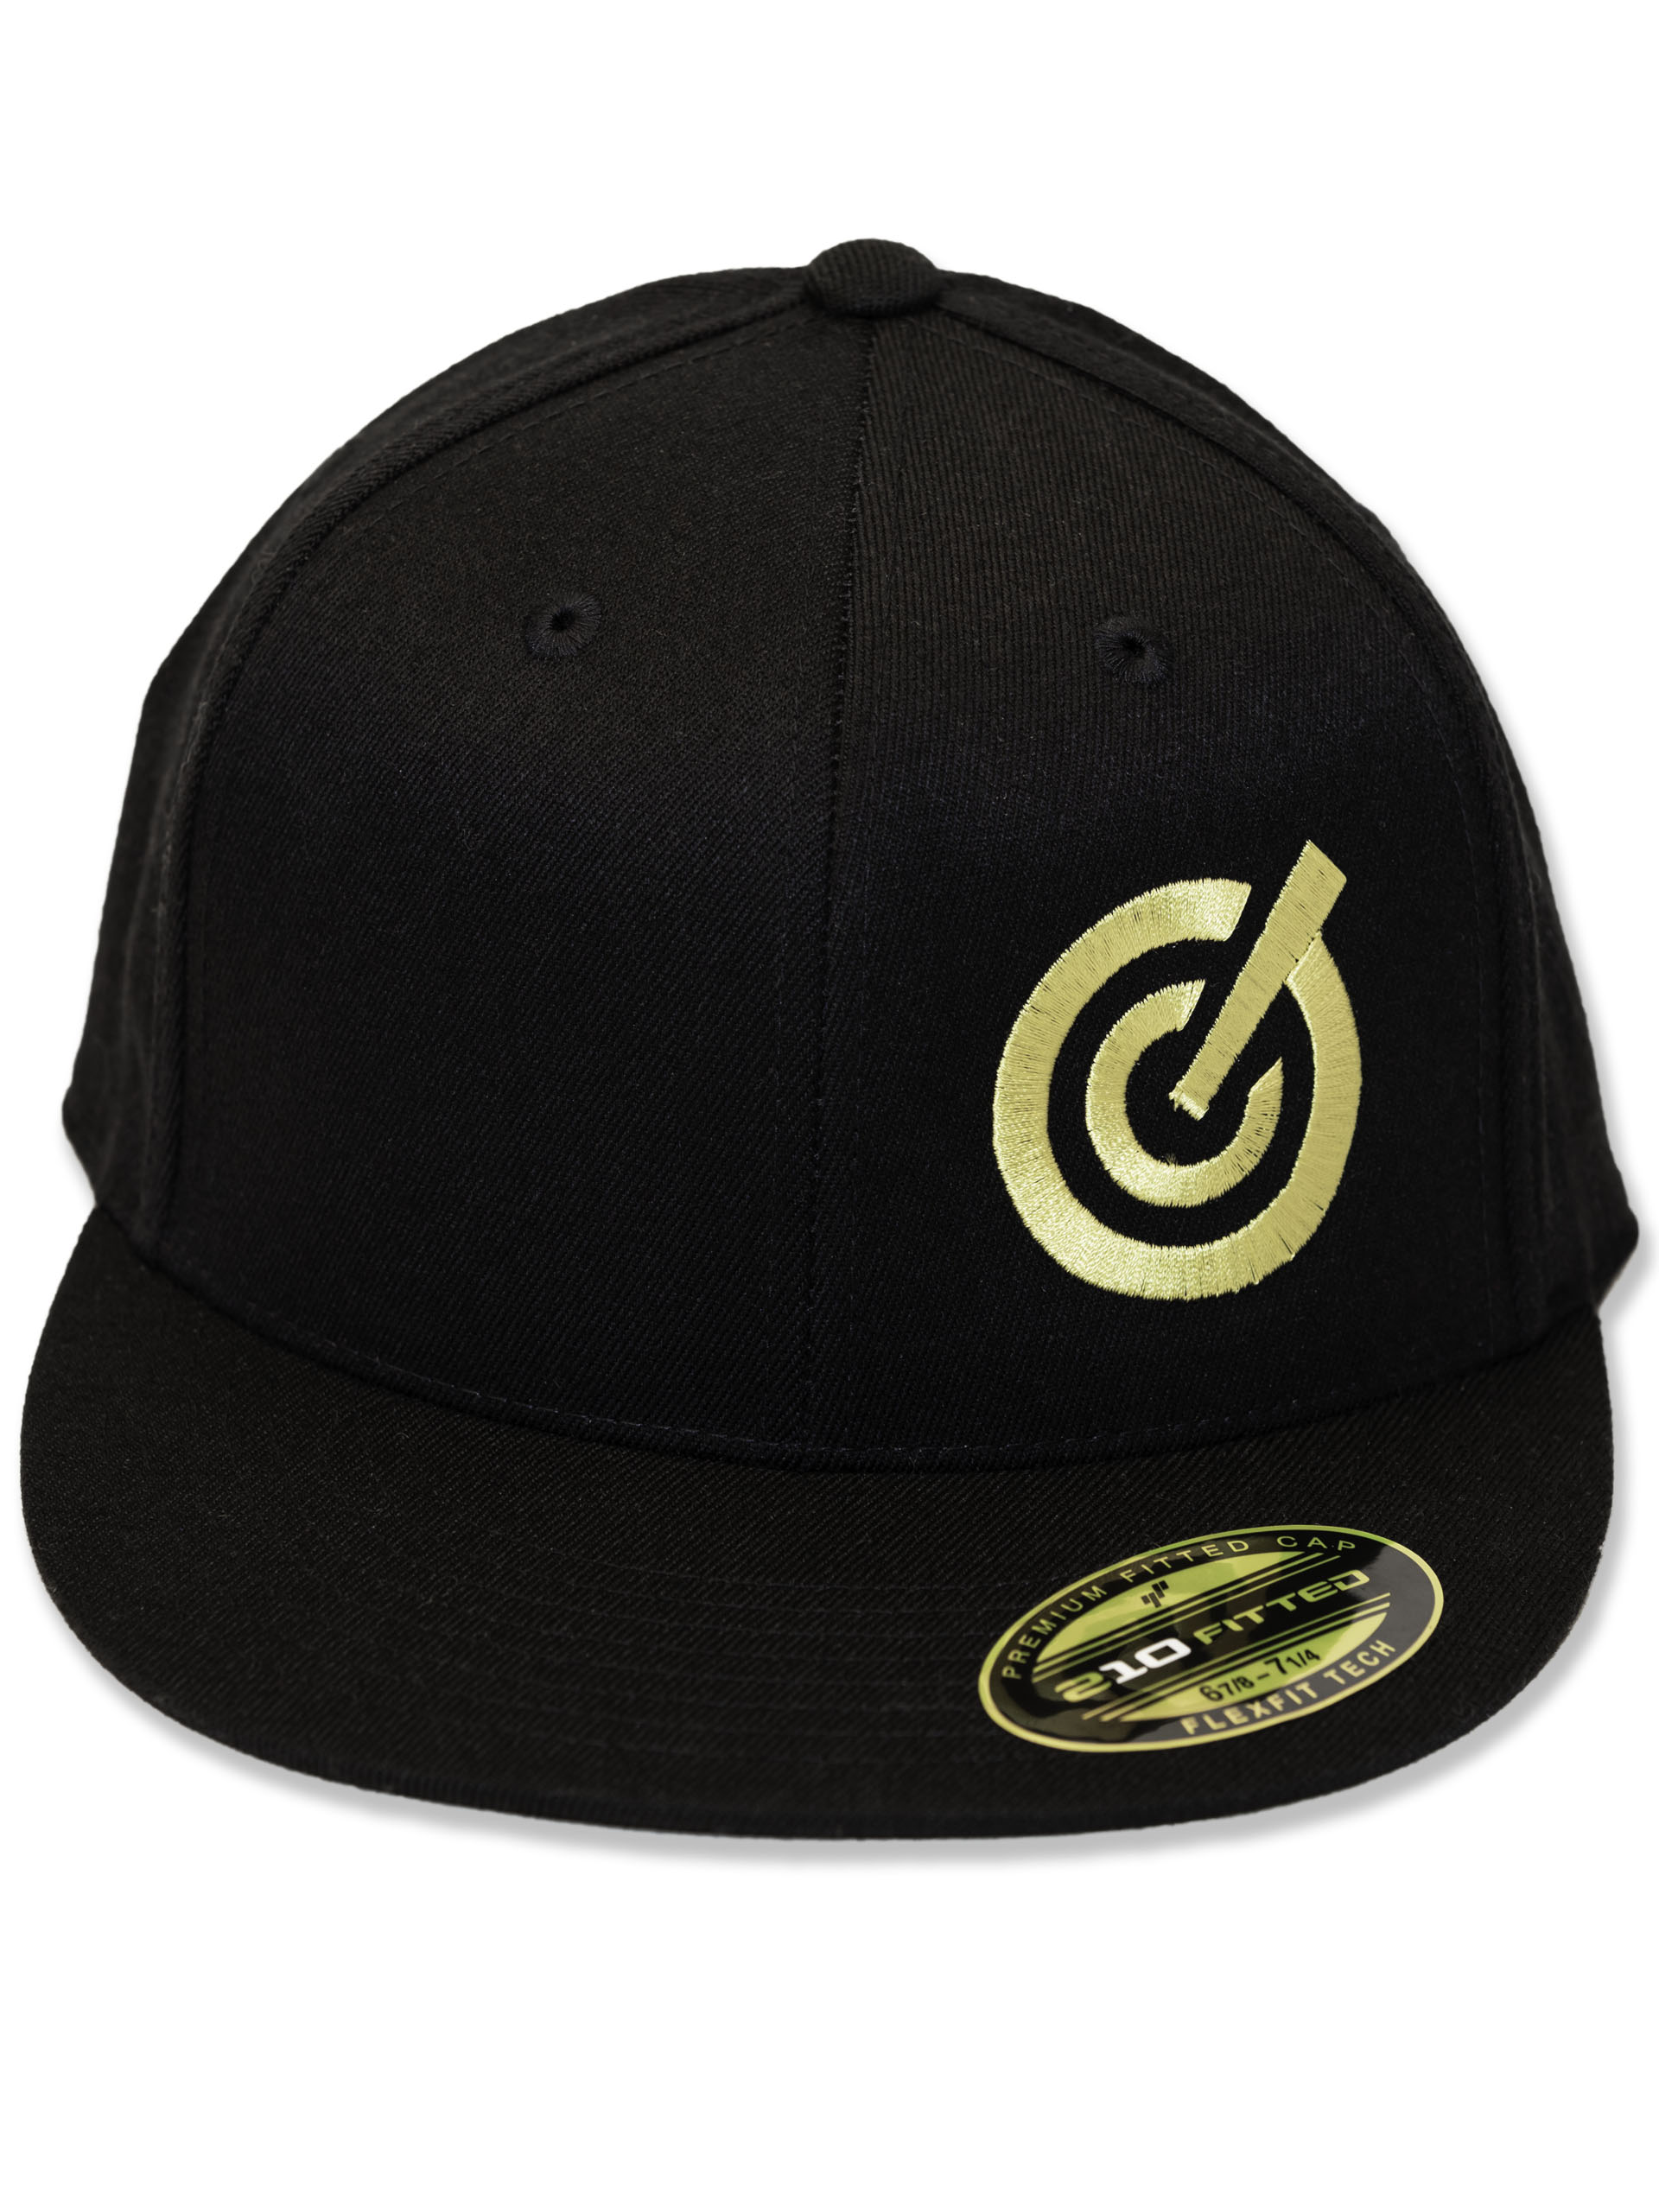 Black Fitted GC Hat